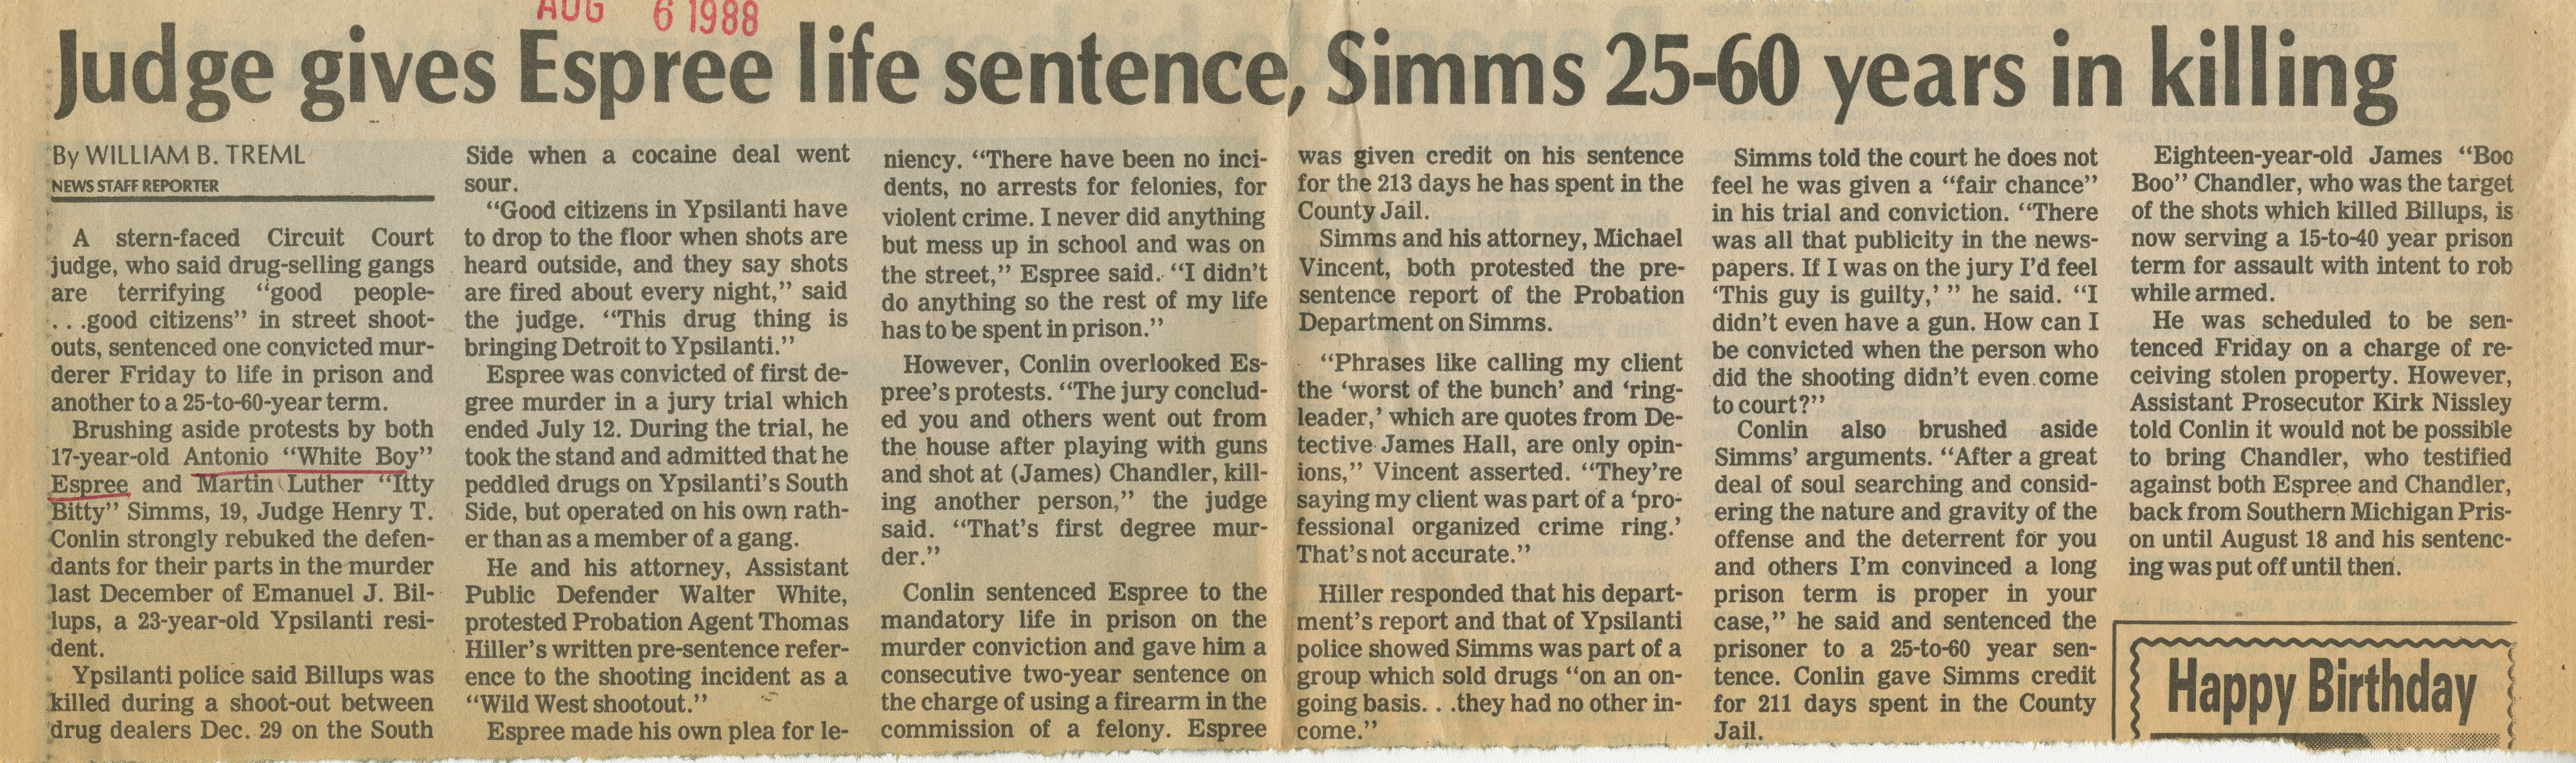 Judge gives Espree life sentence, Sims 25-60 years in killing image